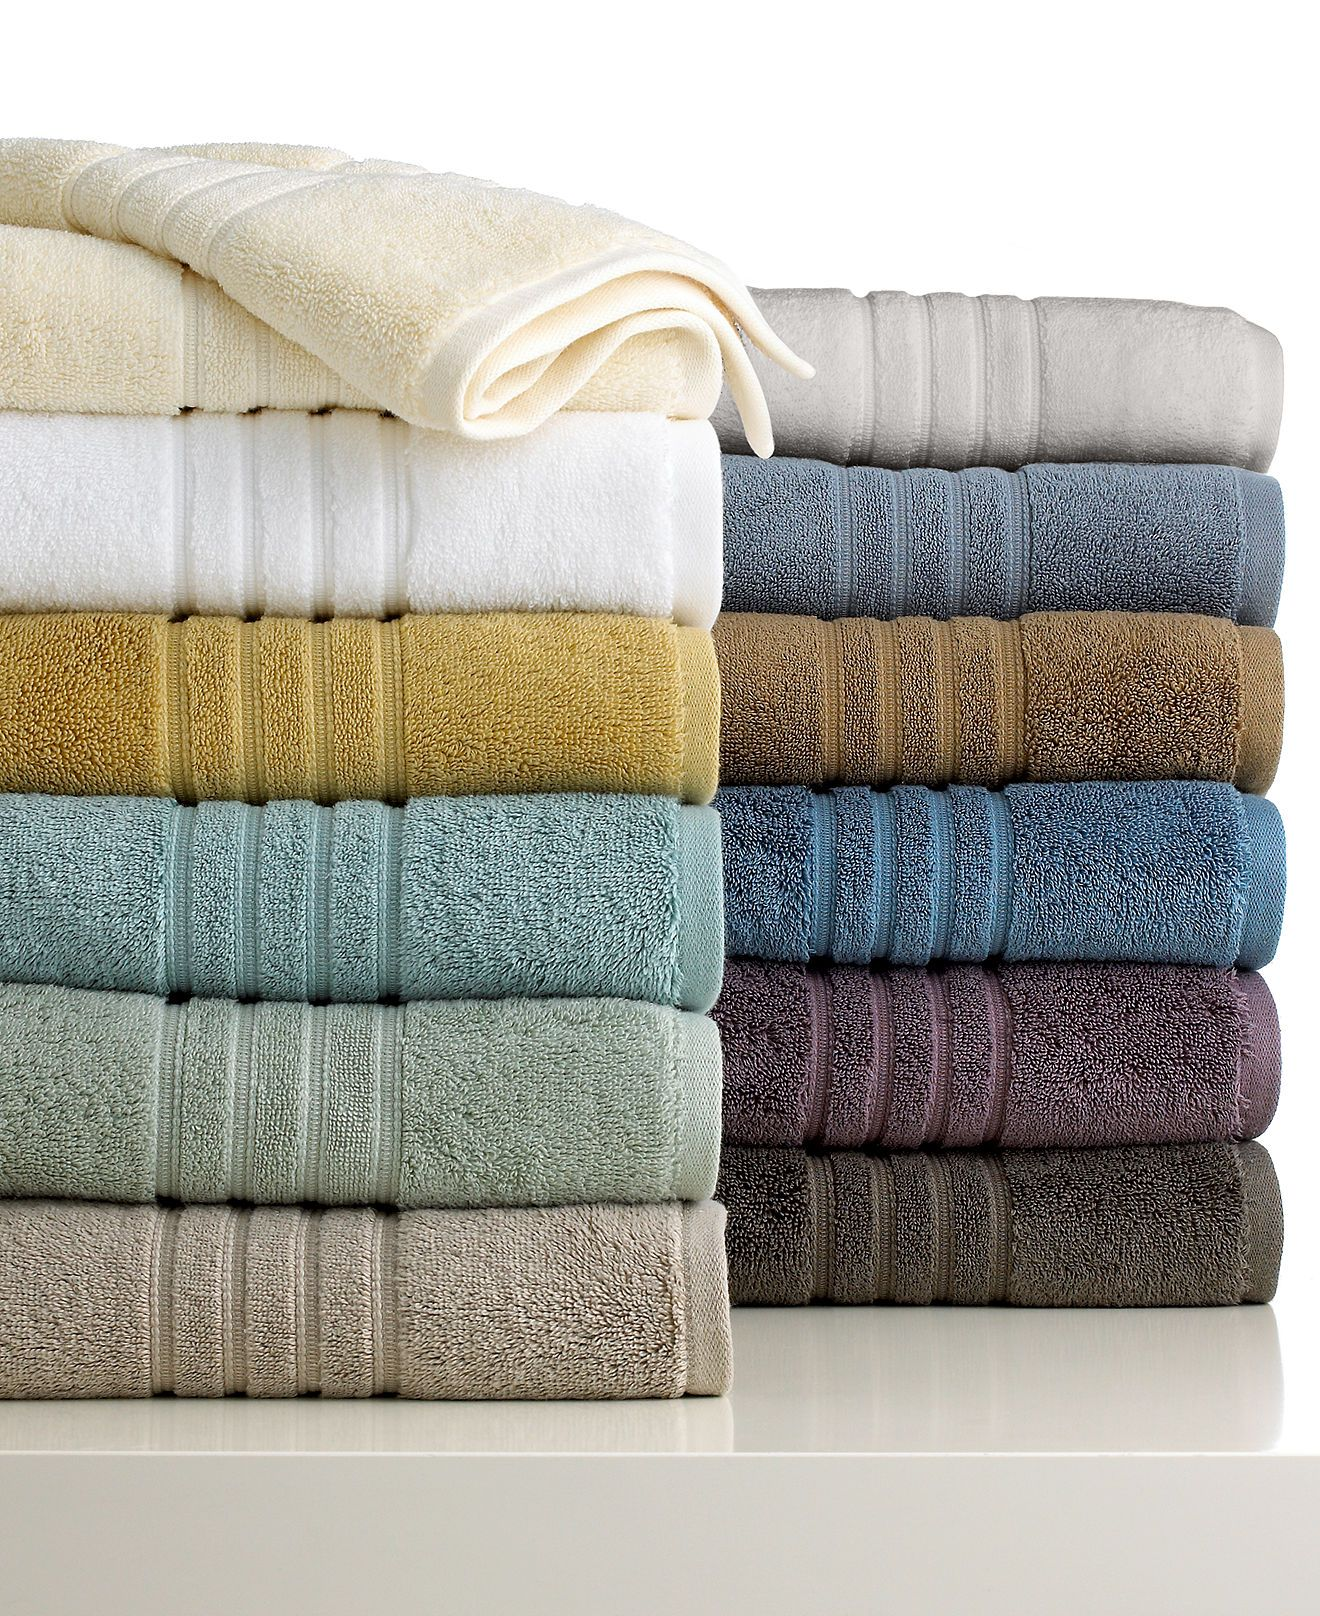 Hotel Collection Finest Bath Towels: Hotel Collection Bath Towels From Macy's Have Had These